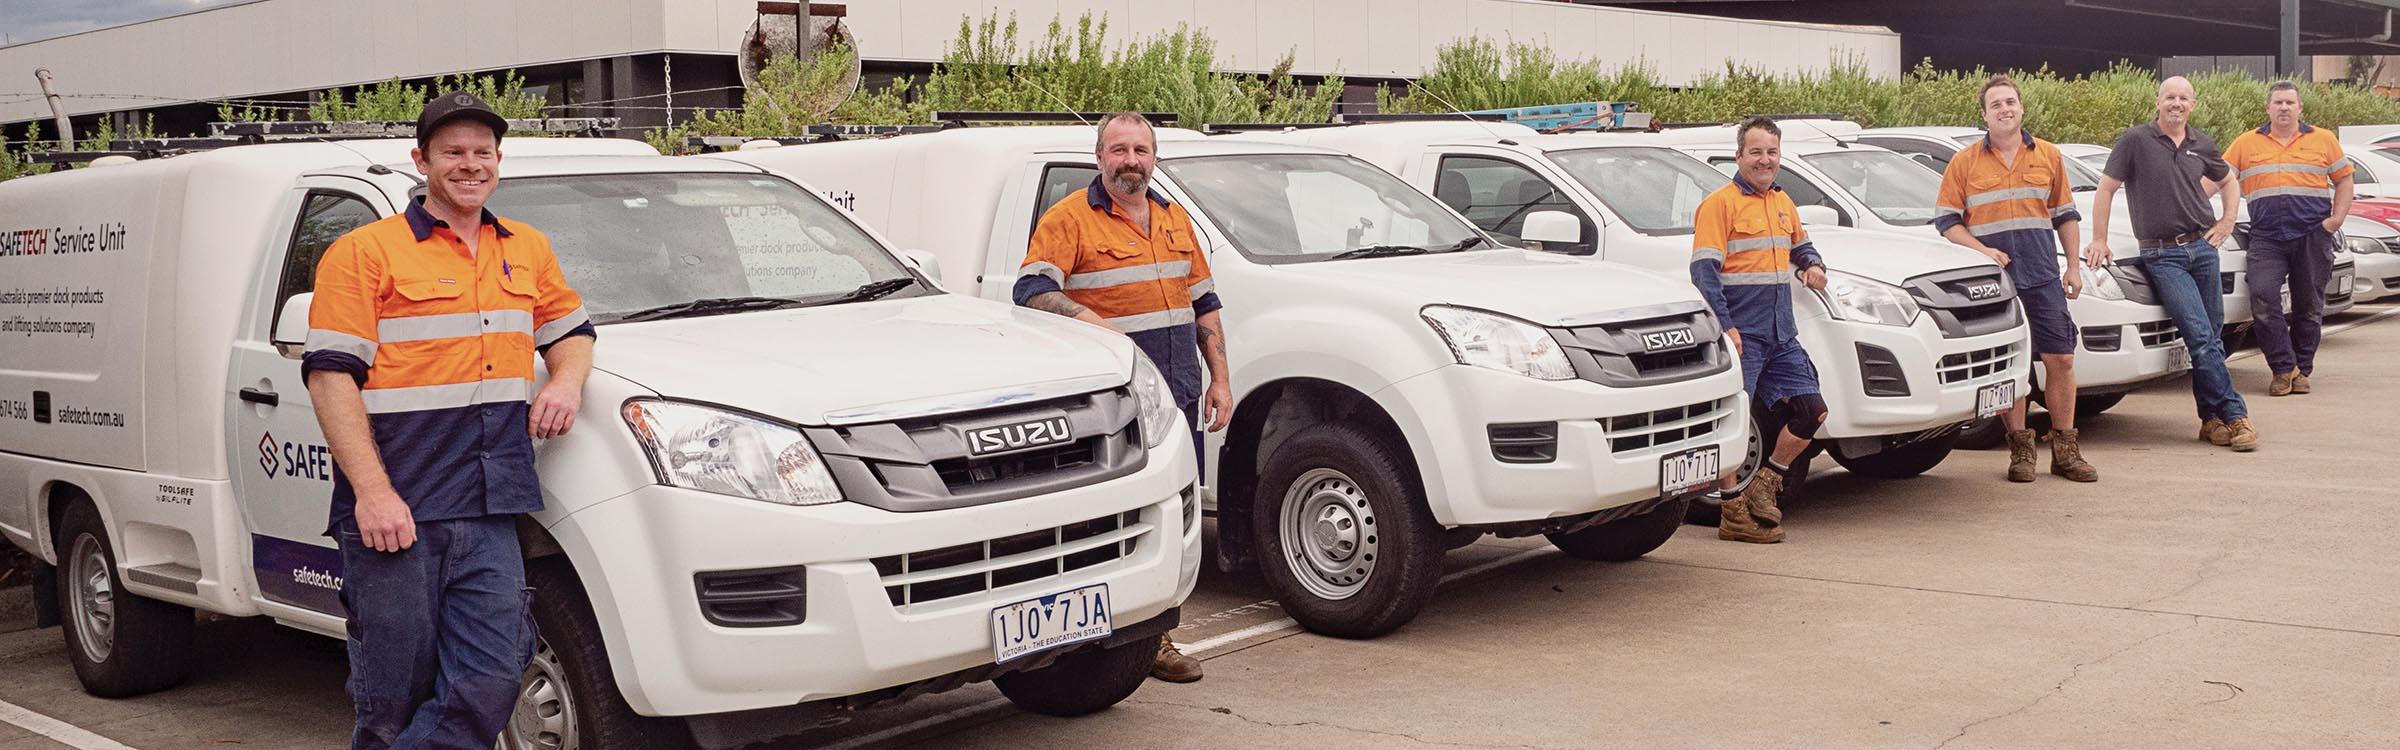 Safetech Service team with their vehicles